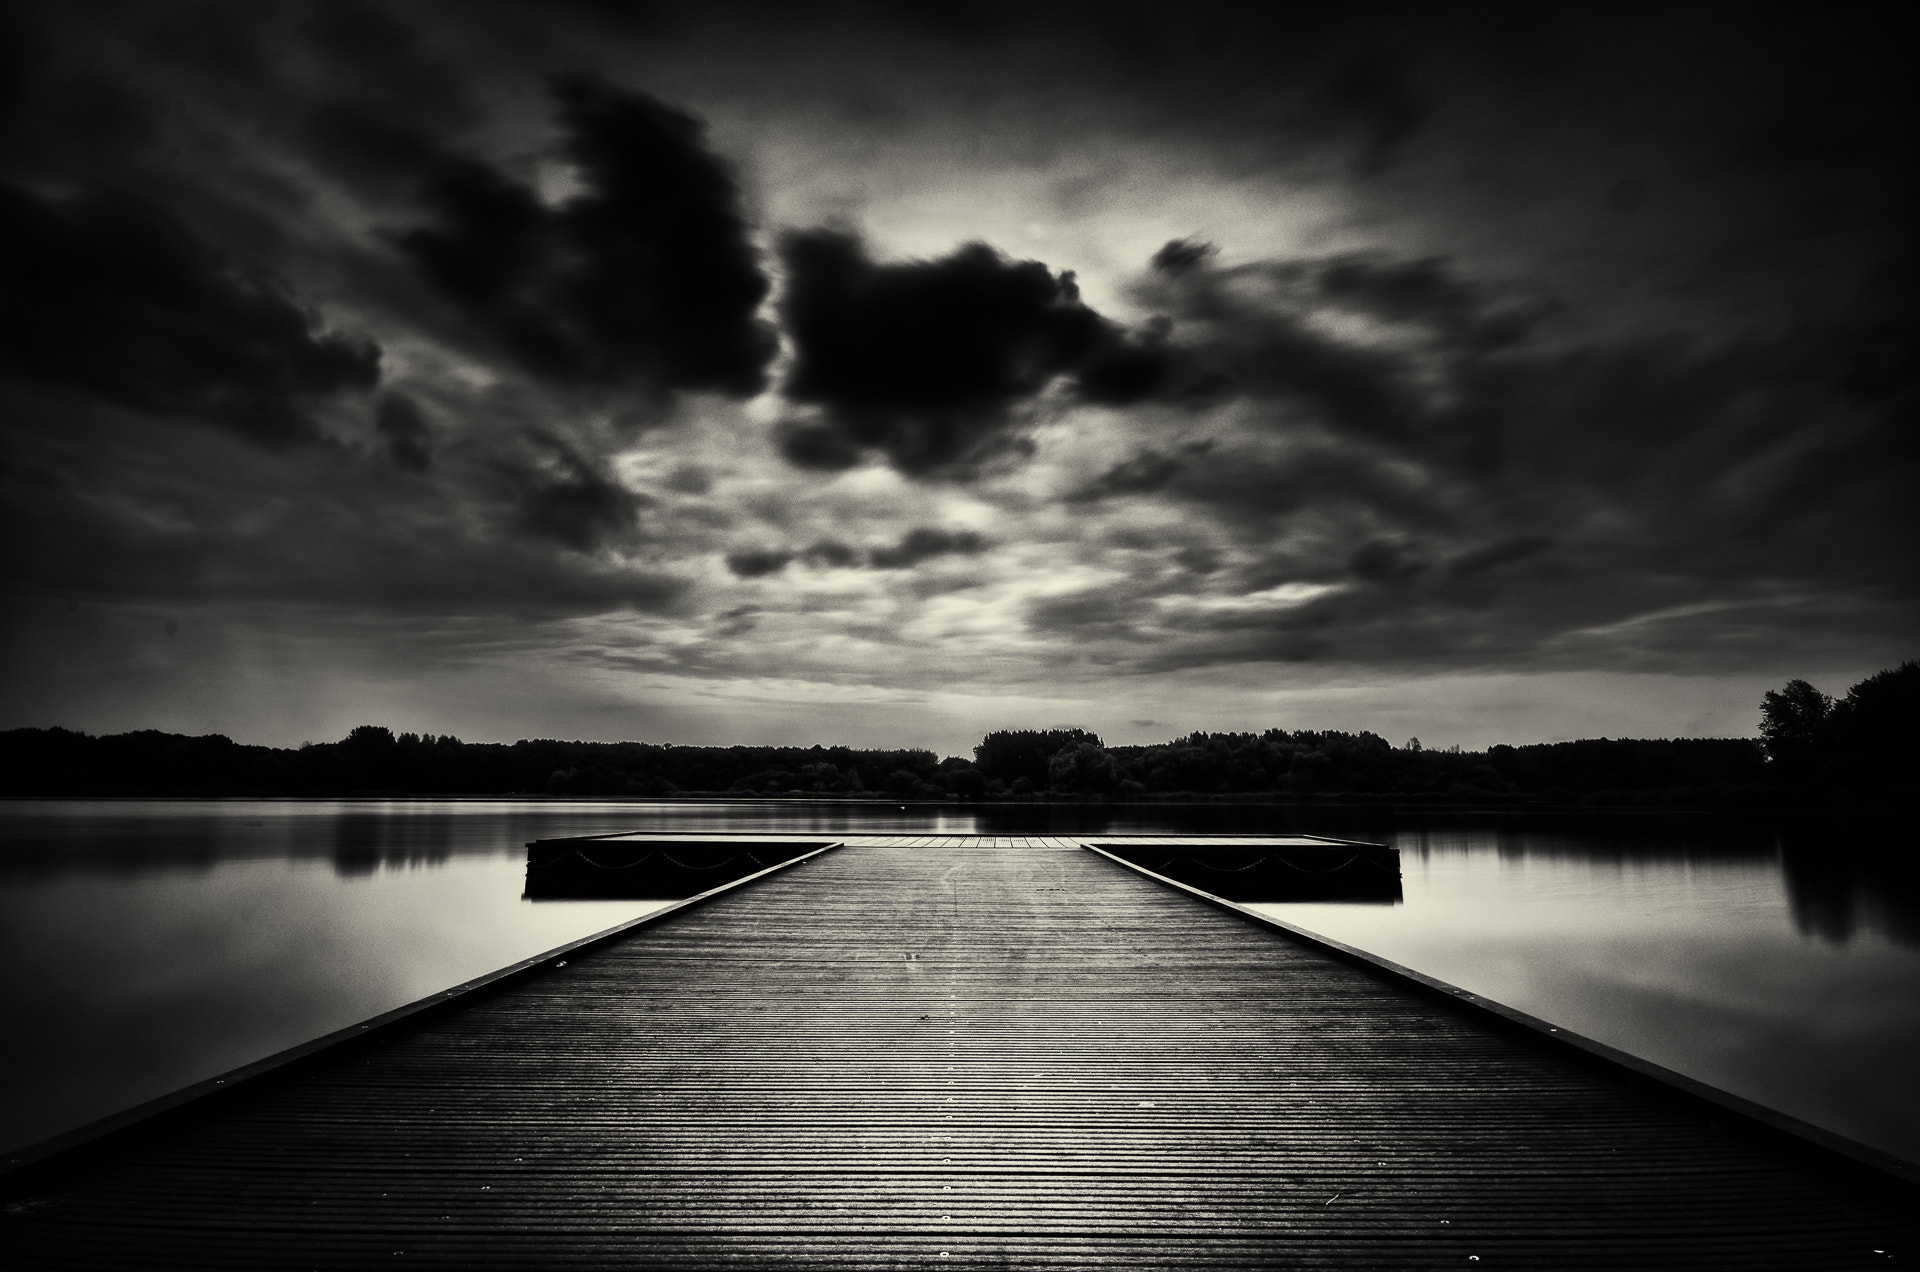 Photograph Darkness ahead by Igwe Aneke on 500px